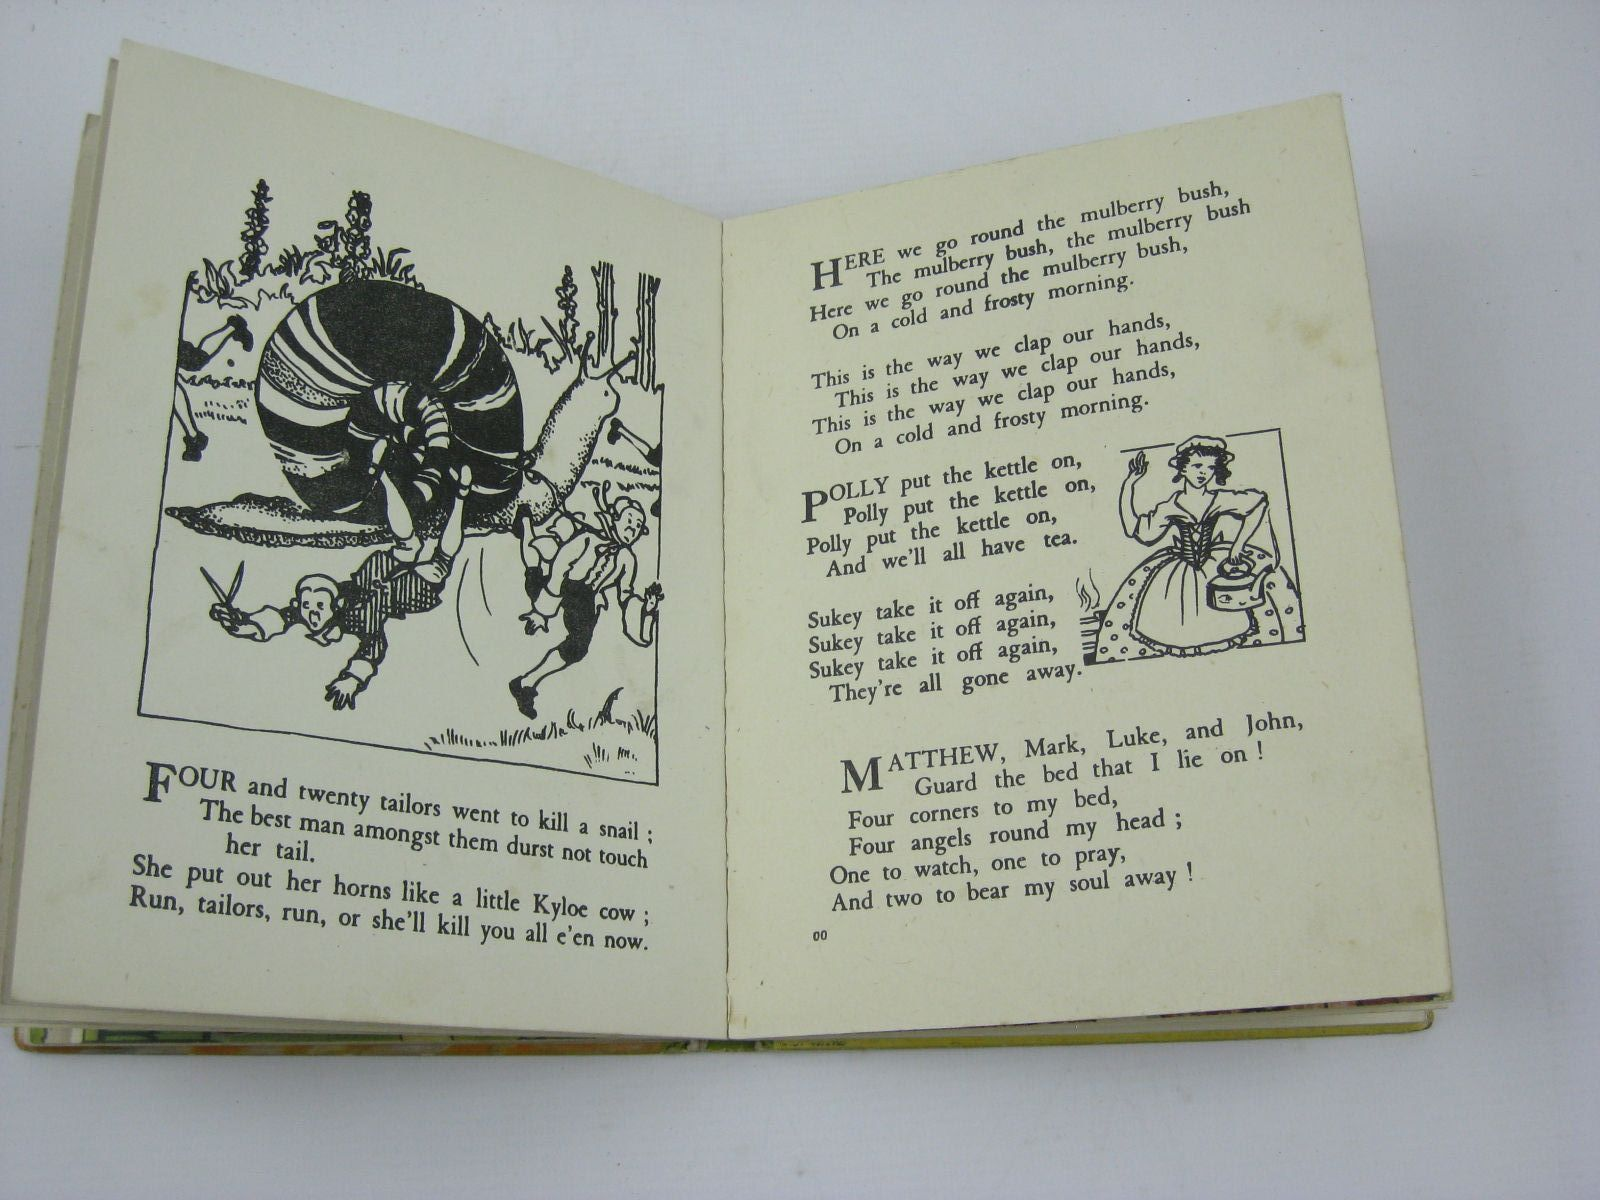 Photo of OLD RHYMES AND NEW STORIES No. 2 written by Giraud, S. Louis published by Strand Publications (STOCK CODE: 1316411)  for sale by Stella & Rose's Books